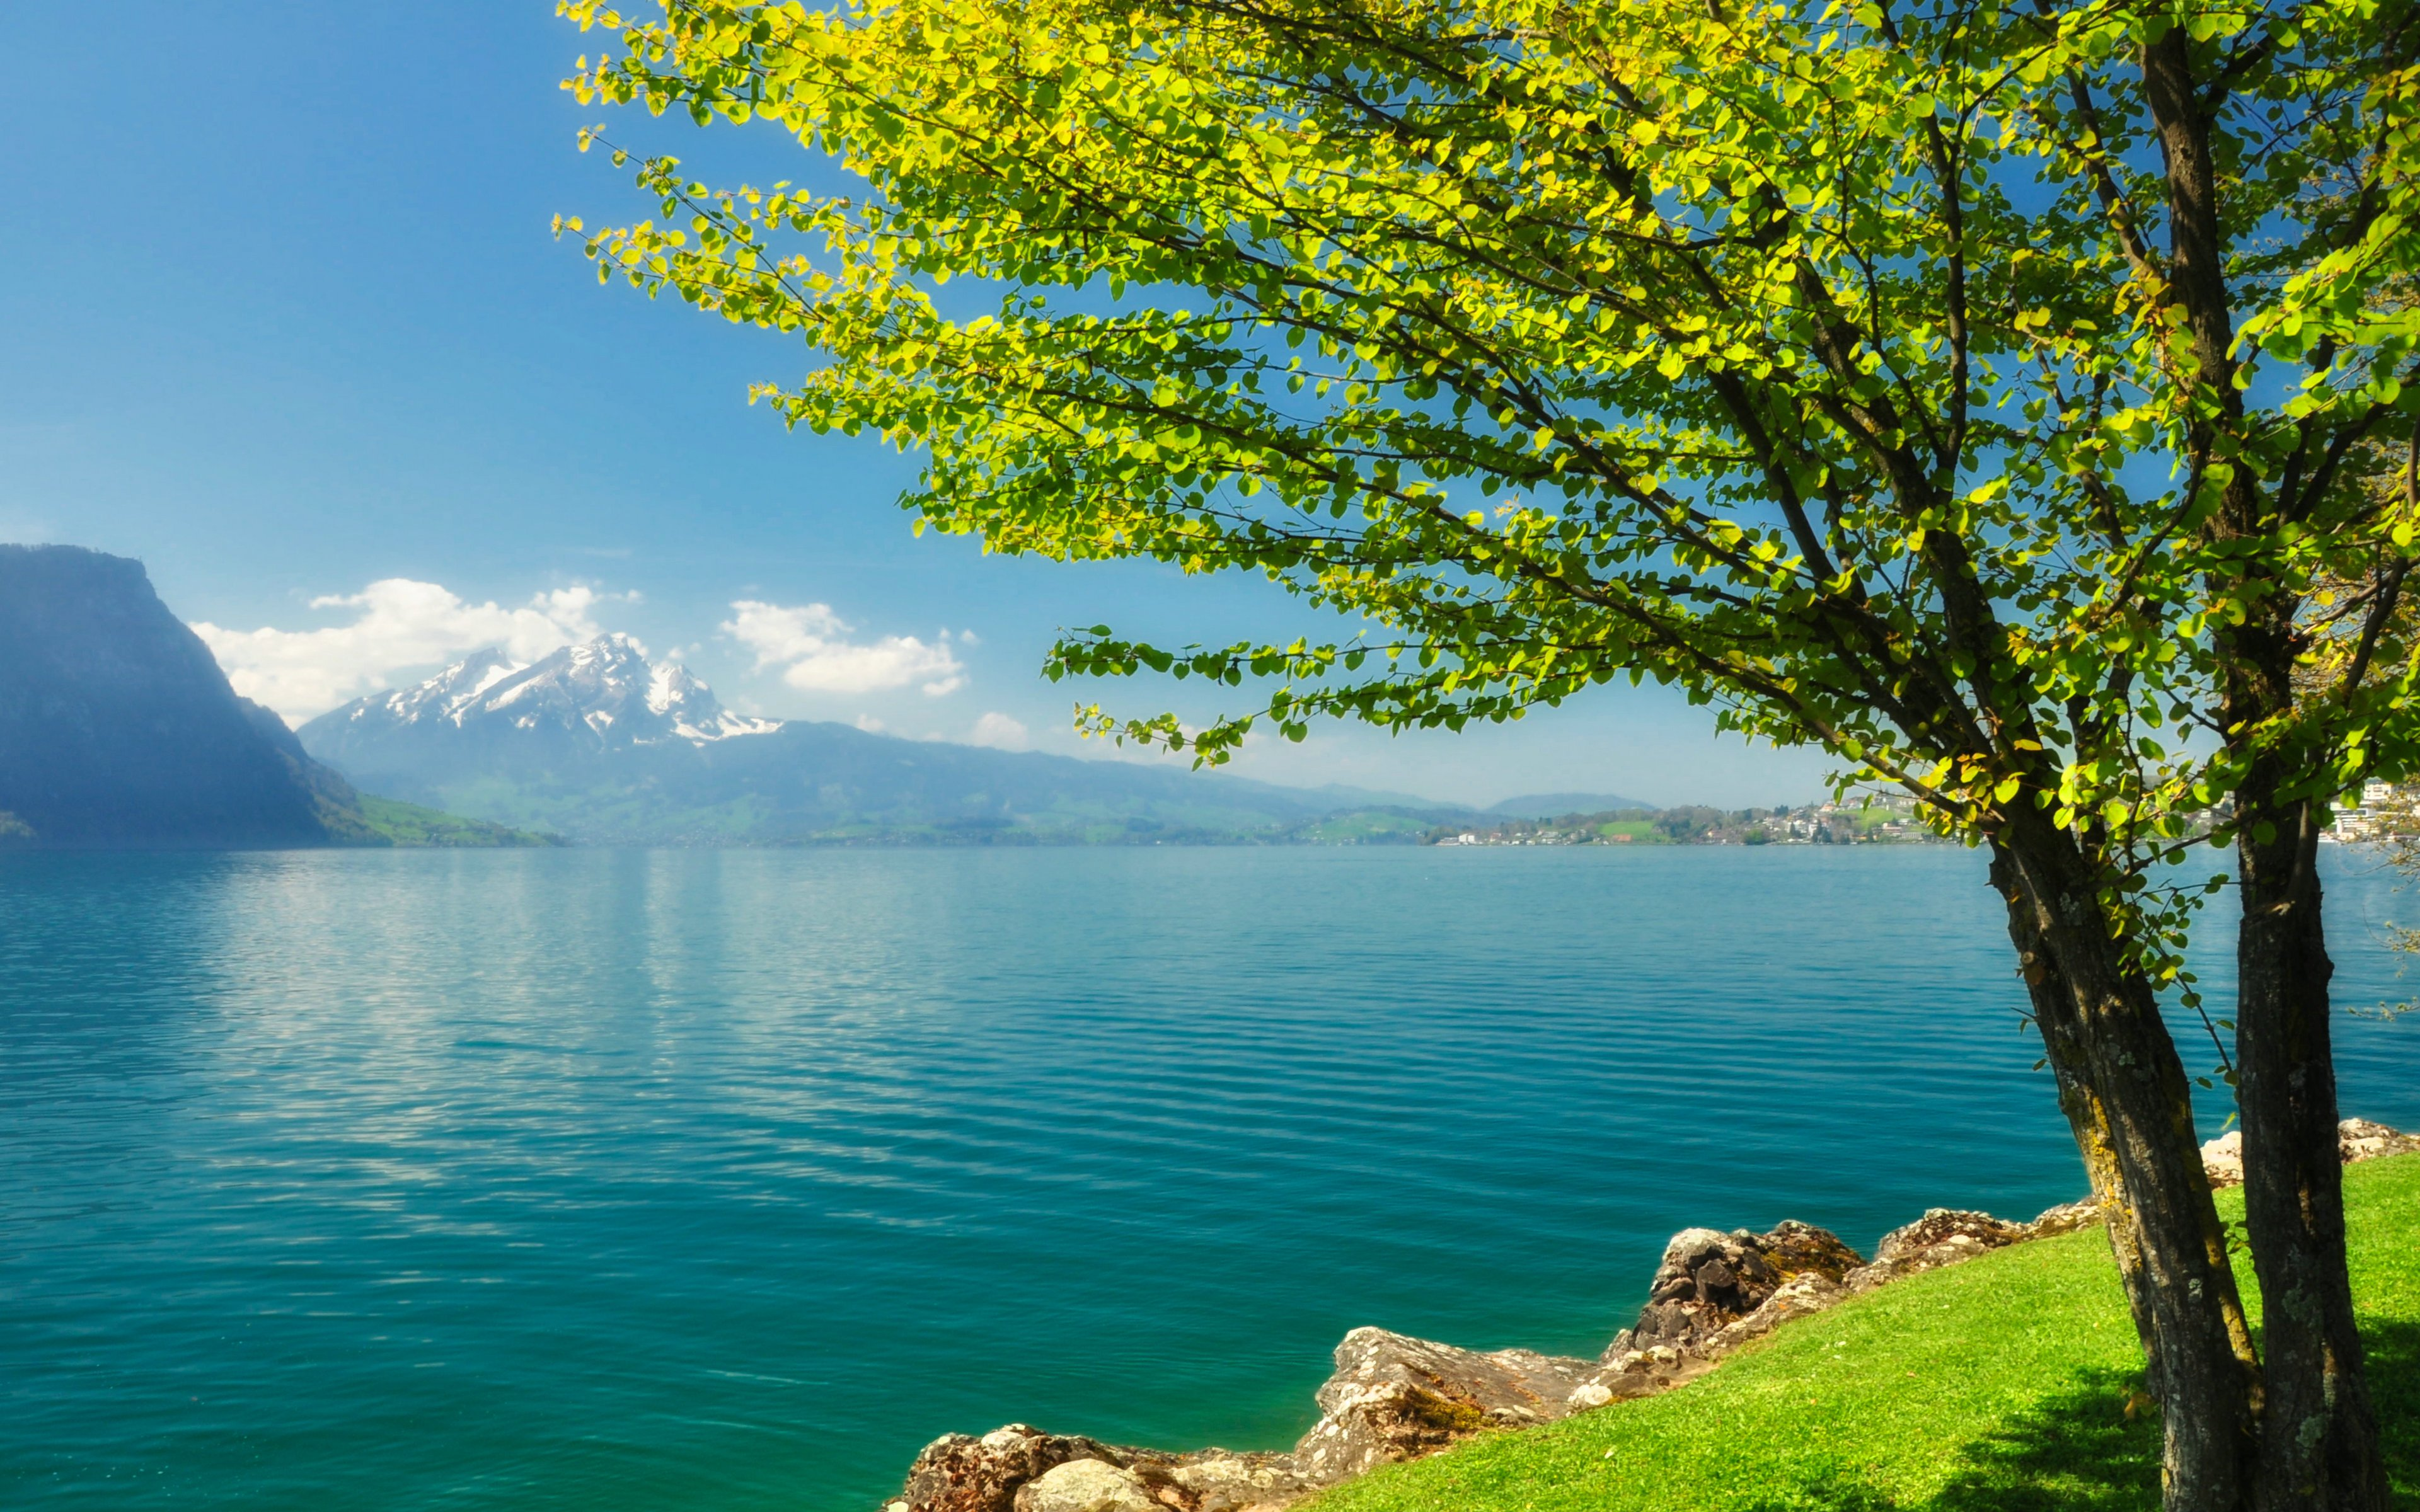 Download Spring Scenery 6392 3840x2400 px High Resolution Wallpaper 3840x2400